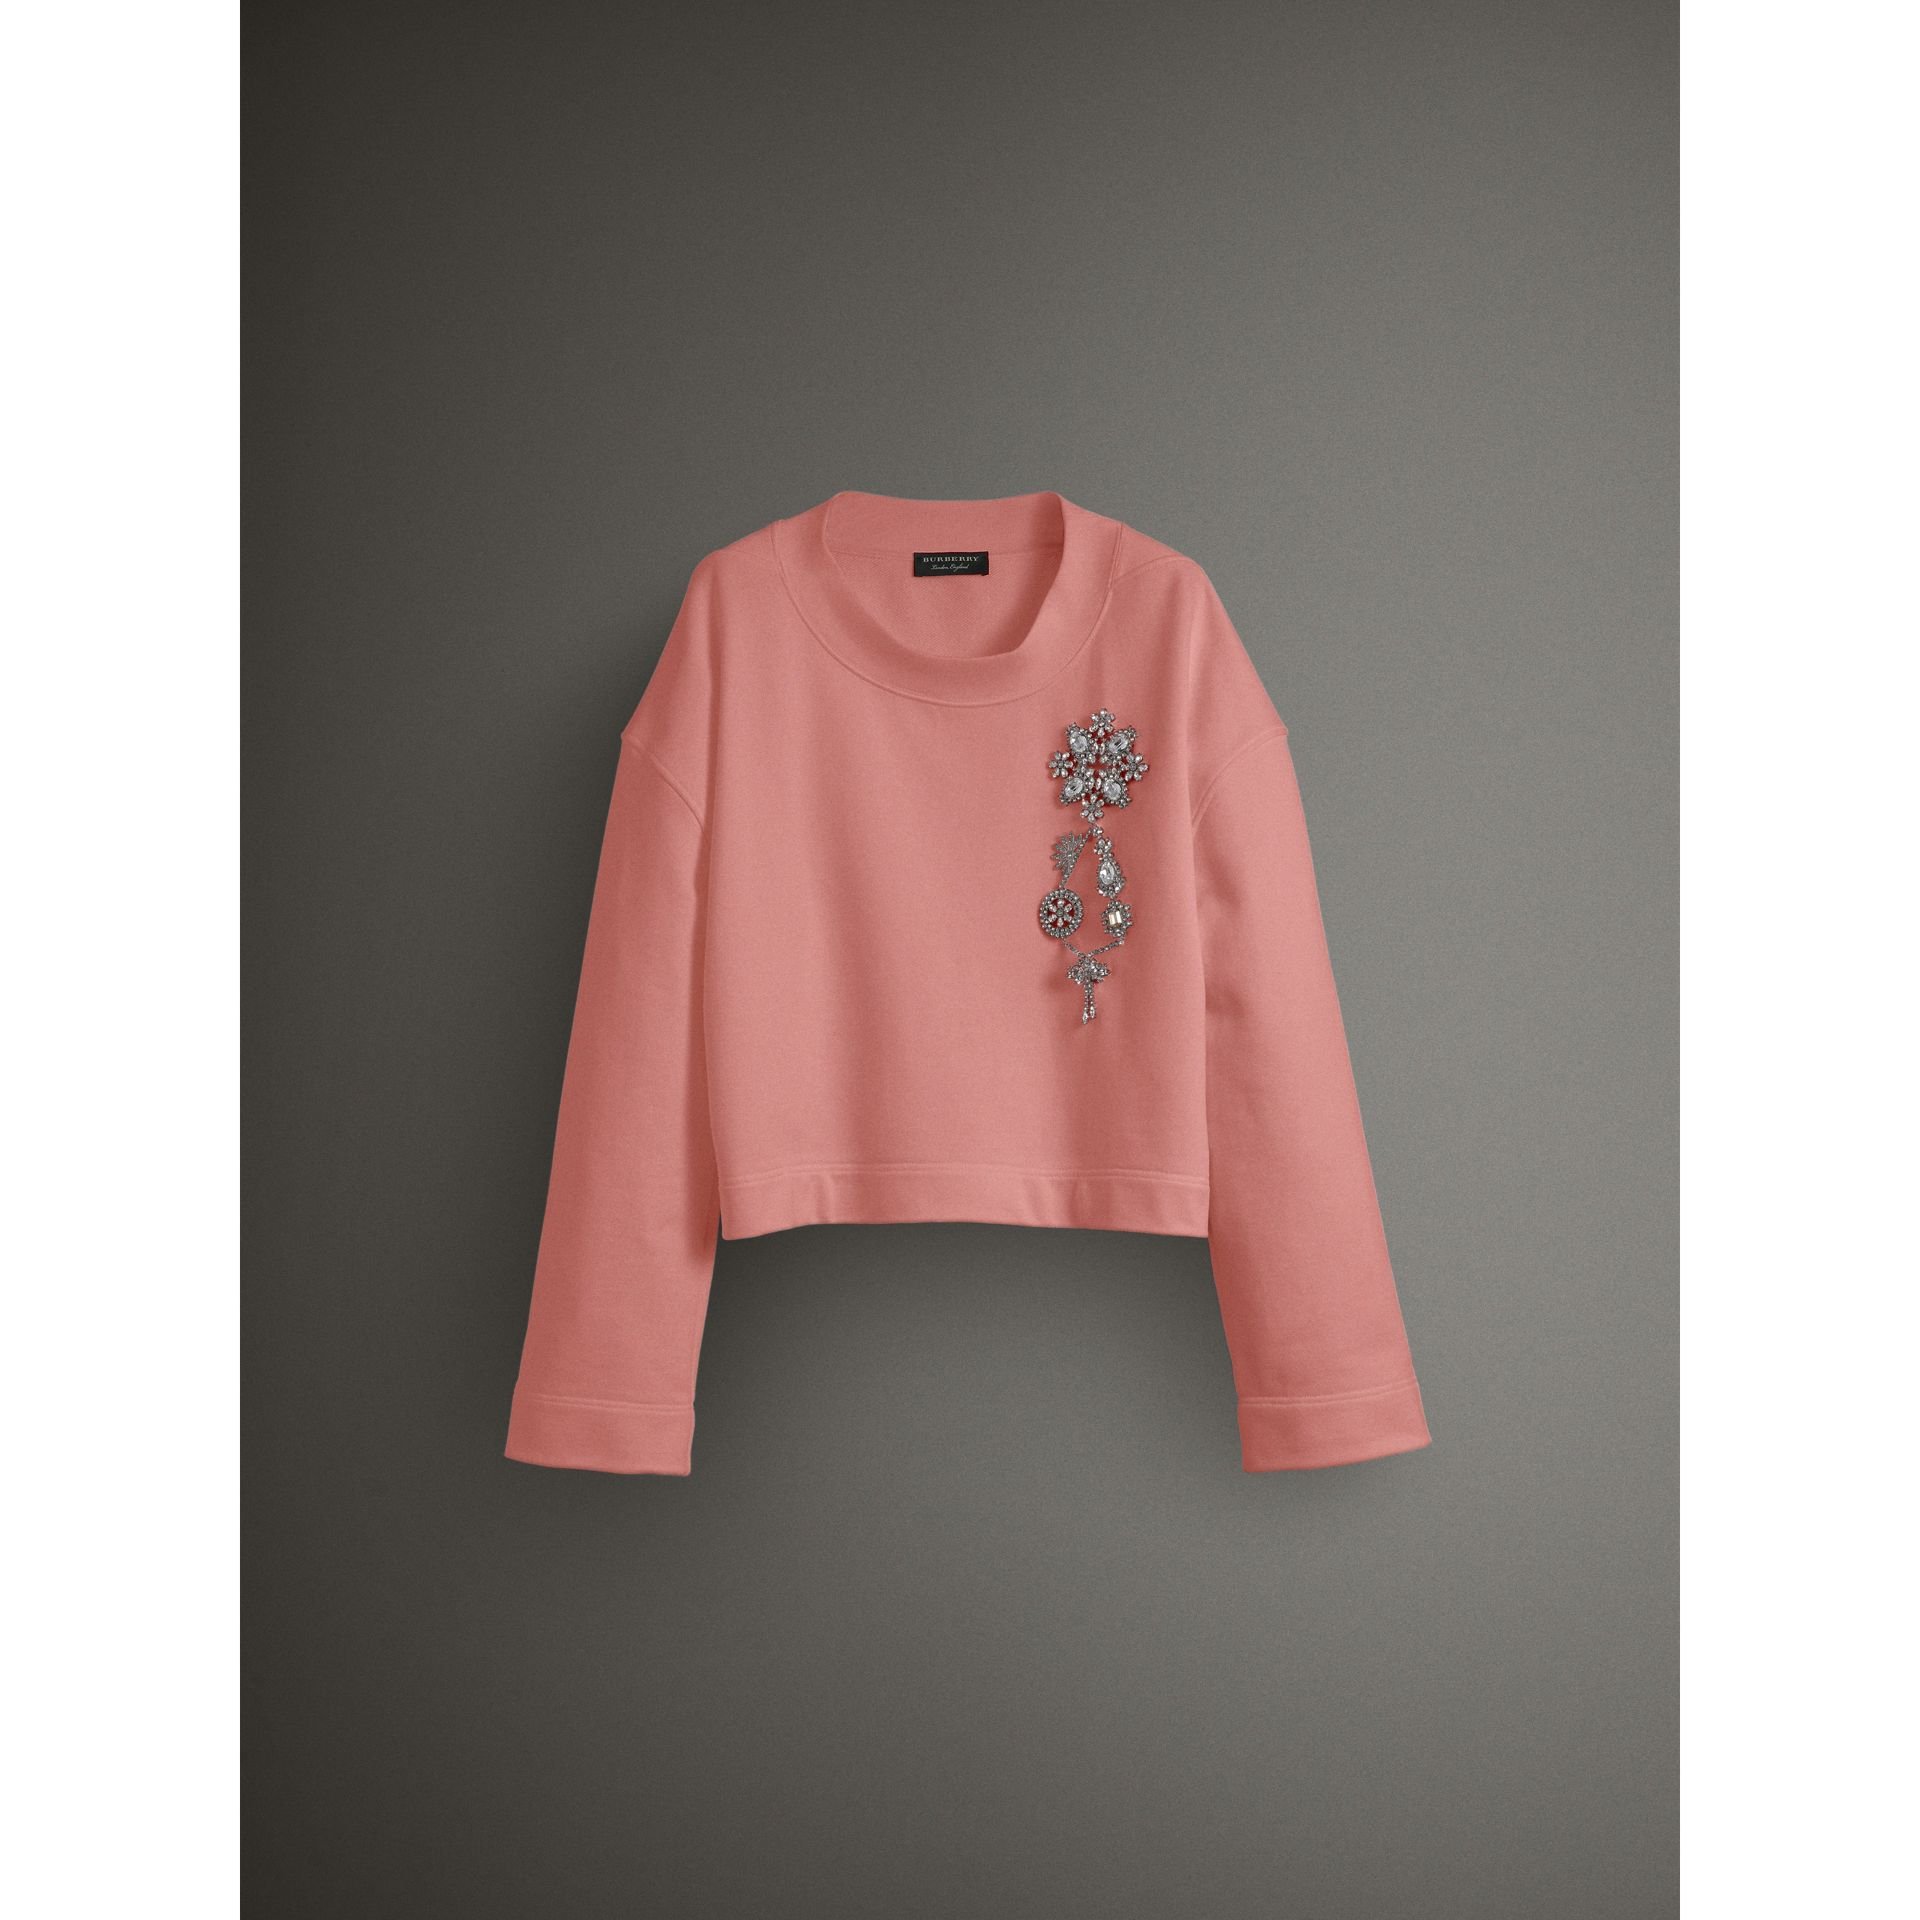 Cropped Sweatshirt with Crystal Brooch in Vintage Rose - Women | Burberry United Kingdom - gallery image 4